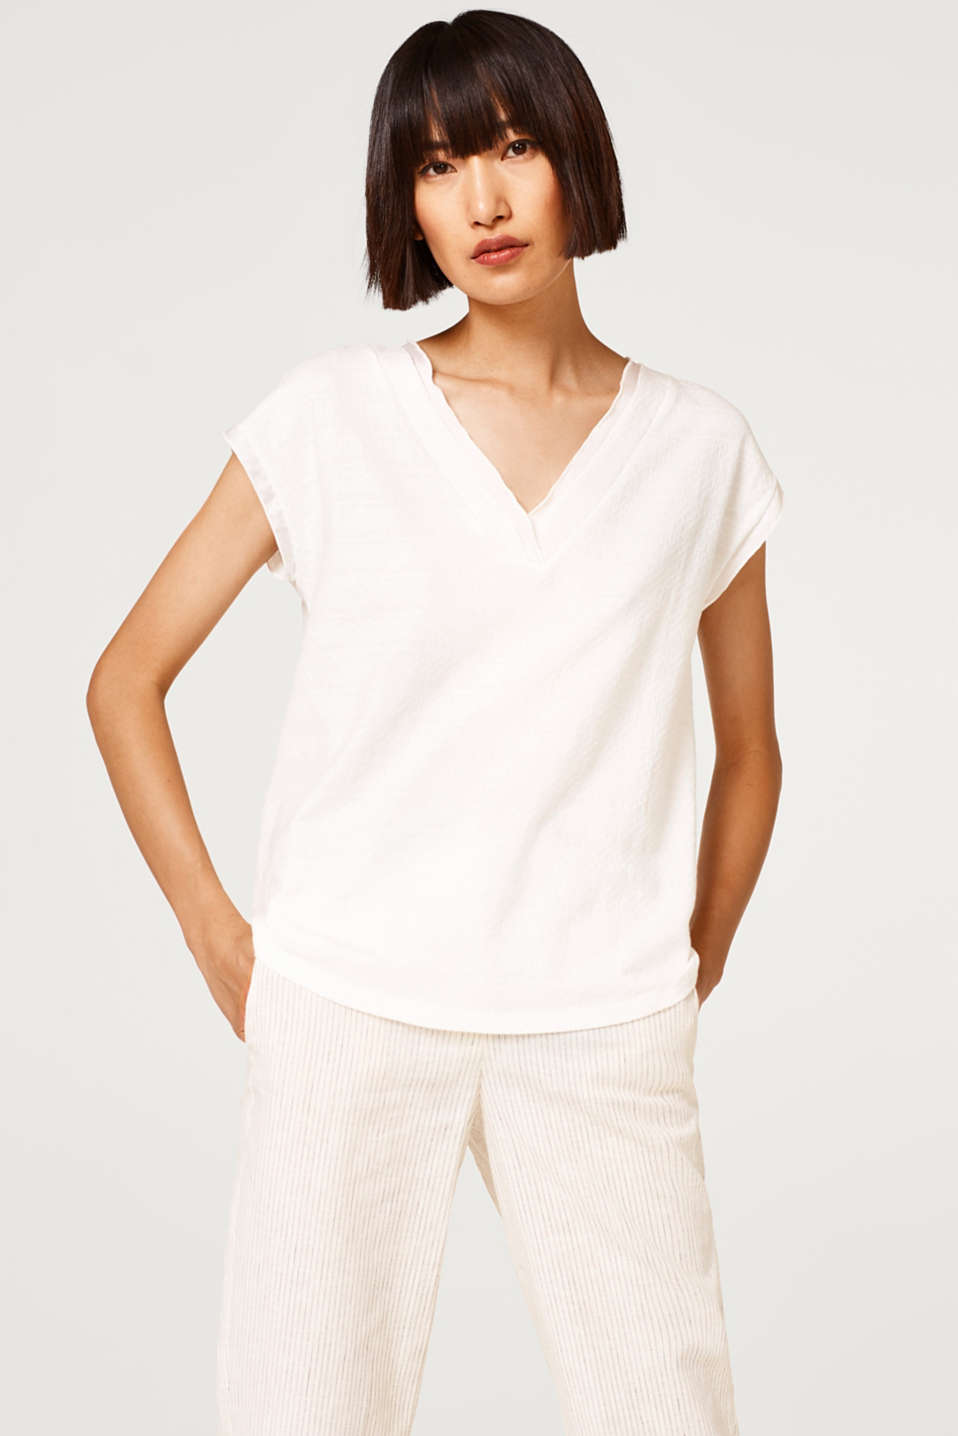 Esprit - Textured T-shirt trimmed with satin